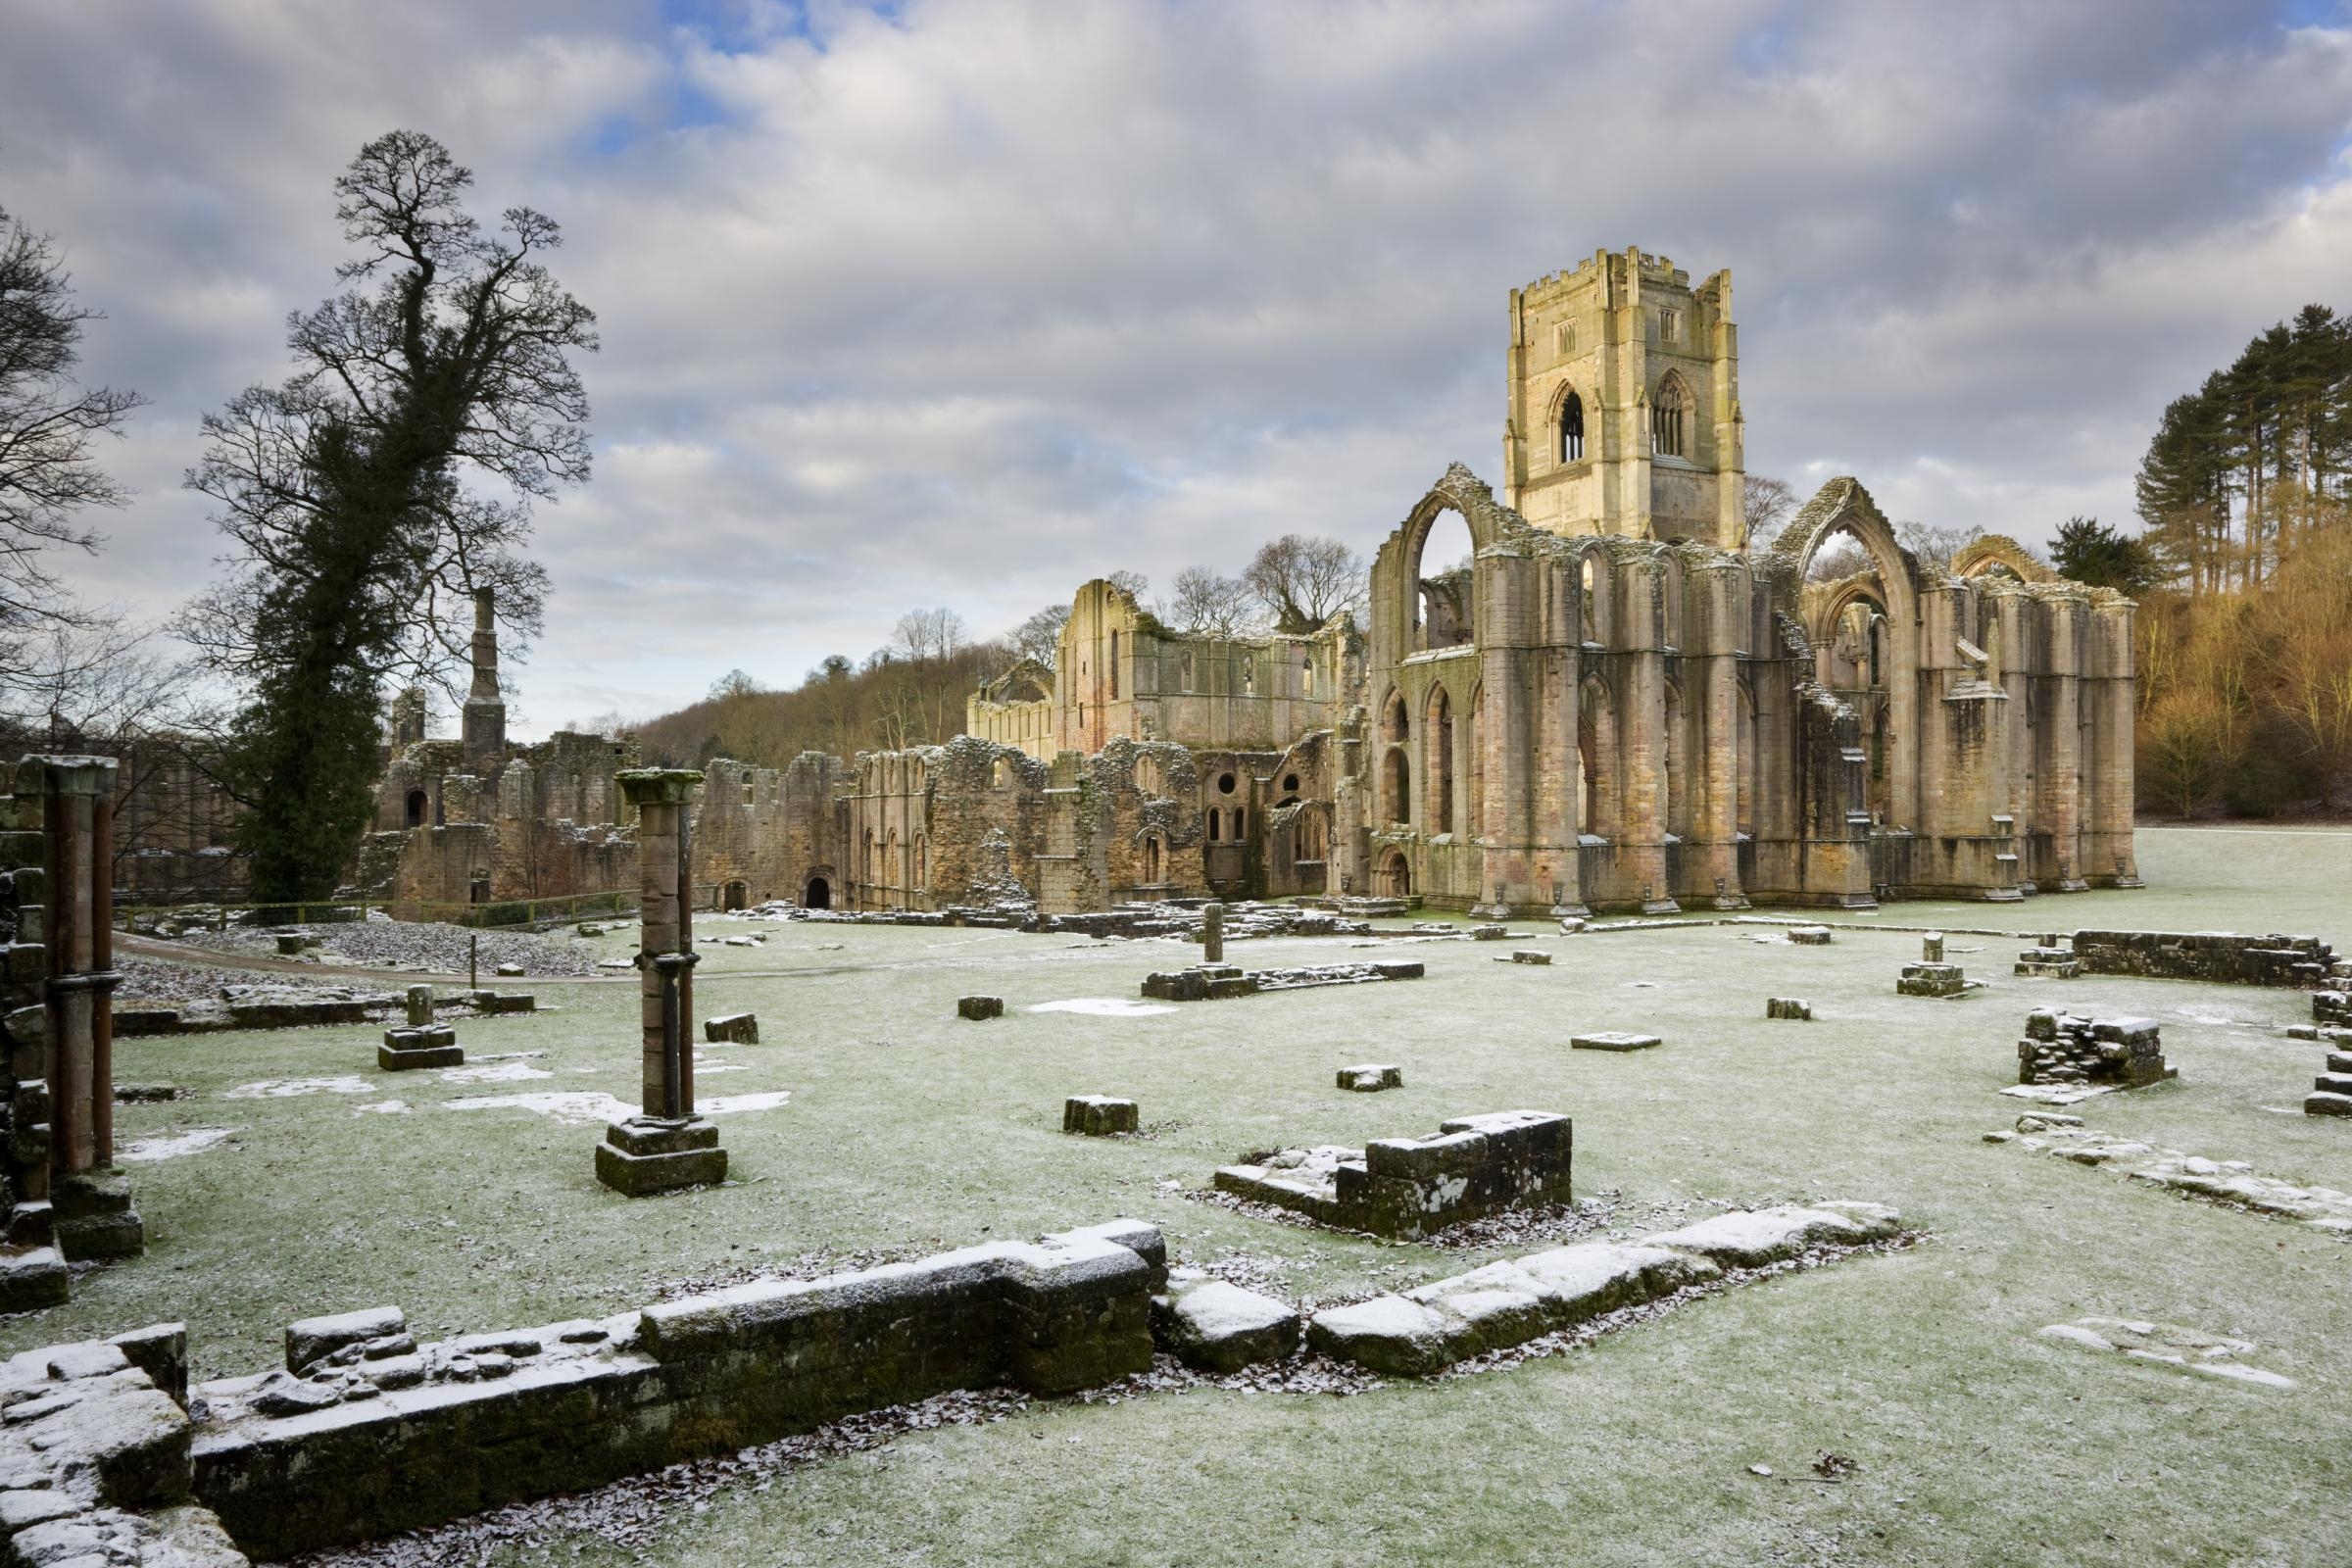 A winter view towards the East end of the Abbey church showing the great East window arch at Fountains Abbey, North Yorkshire